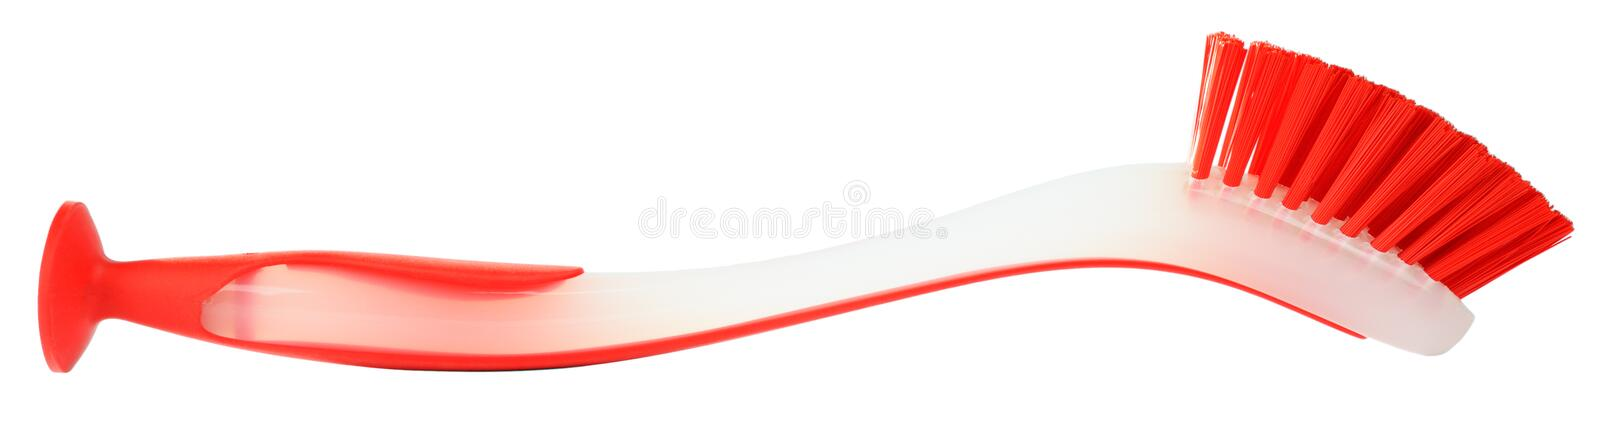 Download Brush For Dishware On White Stock Image - Image of tool, color: 13005583